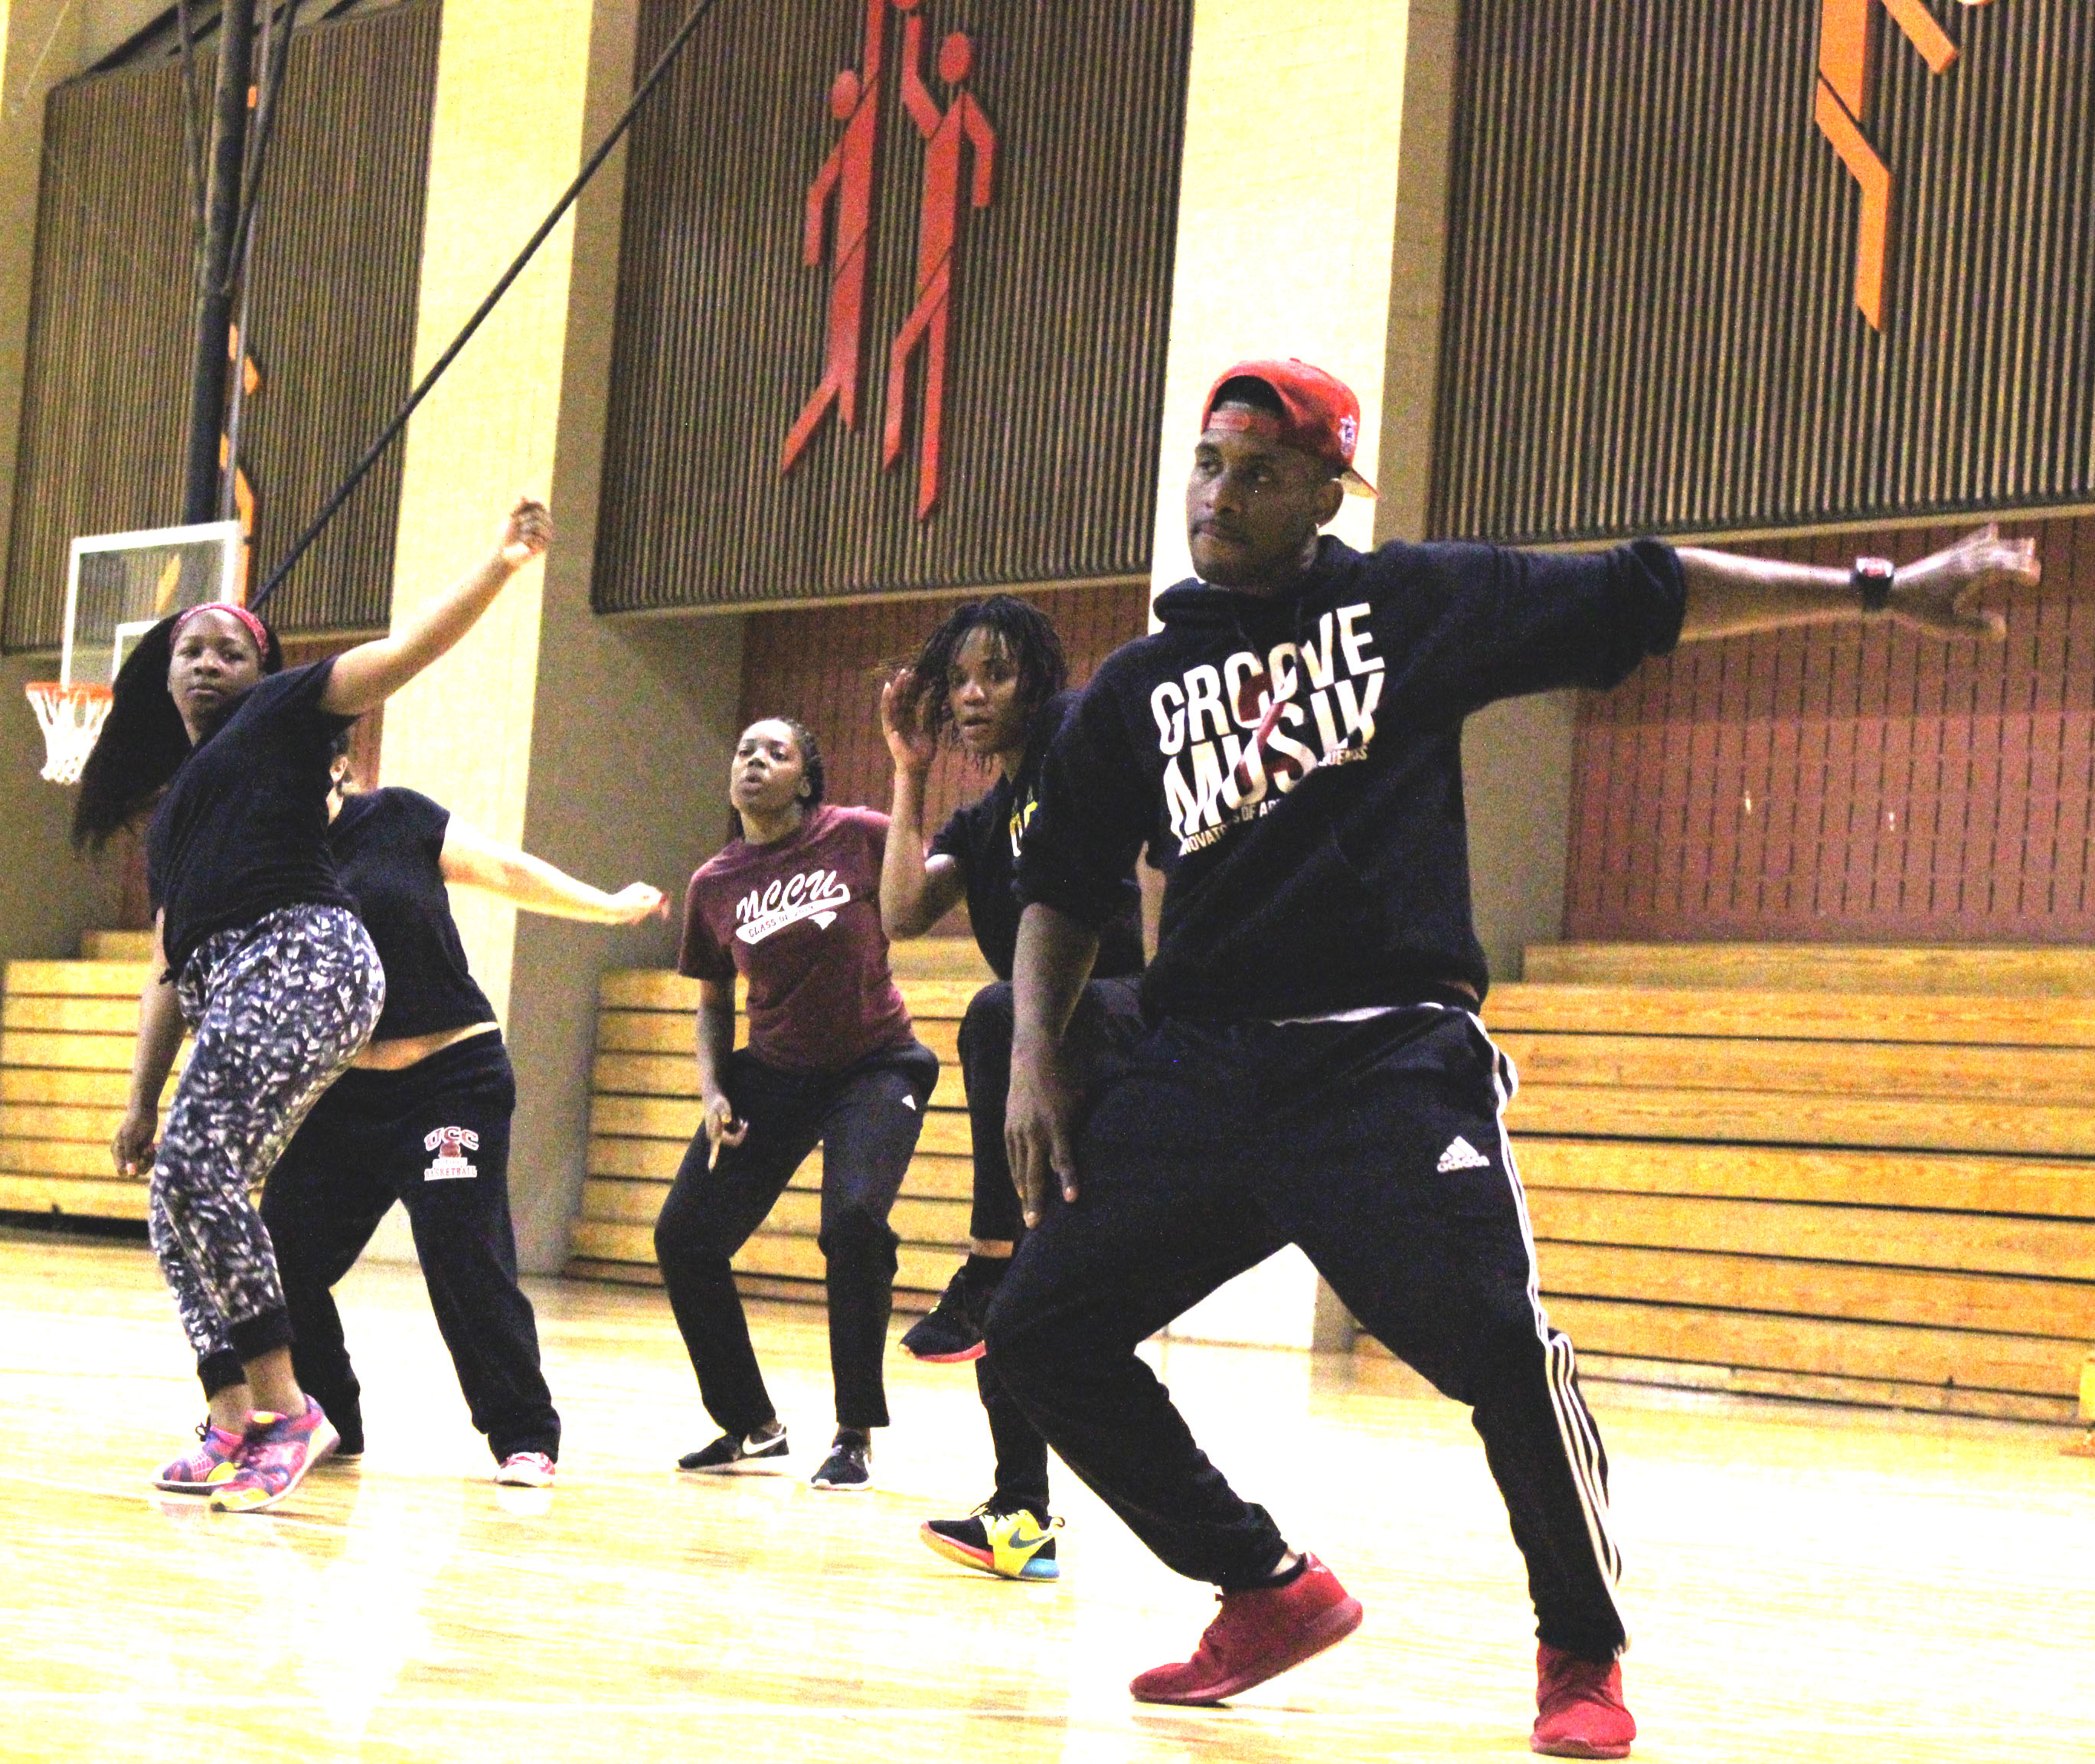 andre-keith_ATL-dance.jpg?time=1614151864